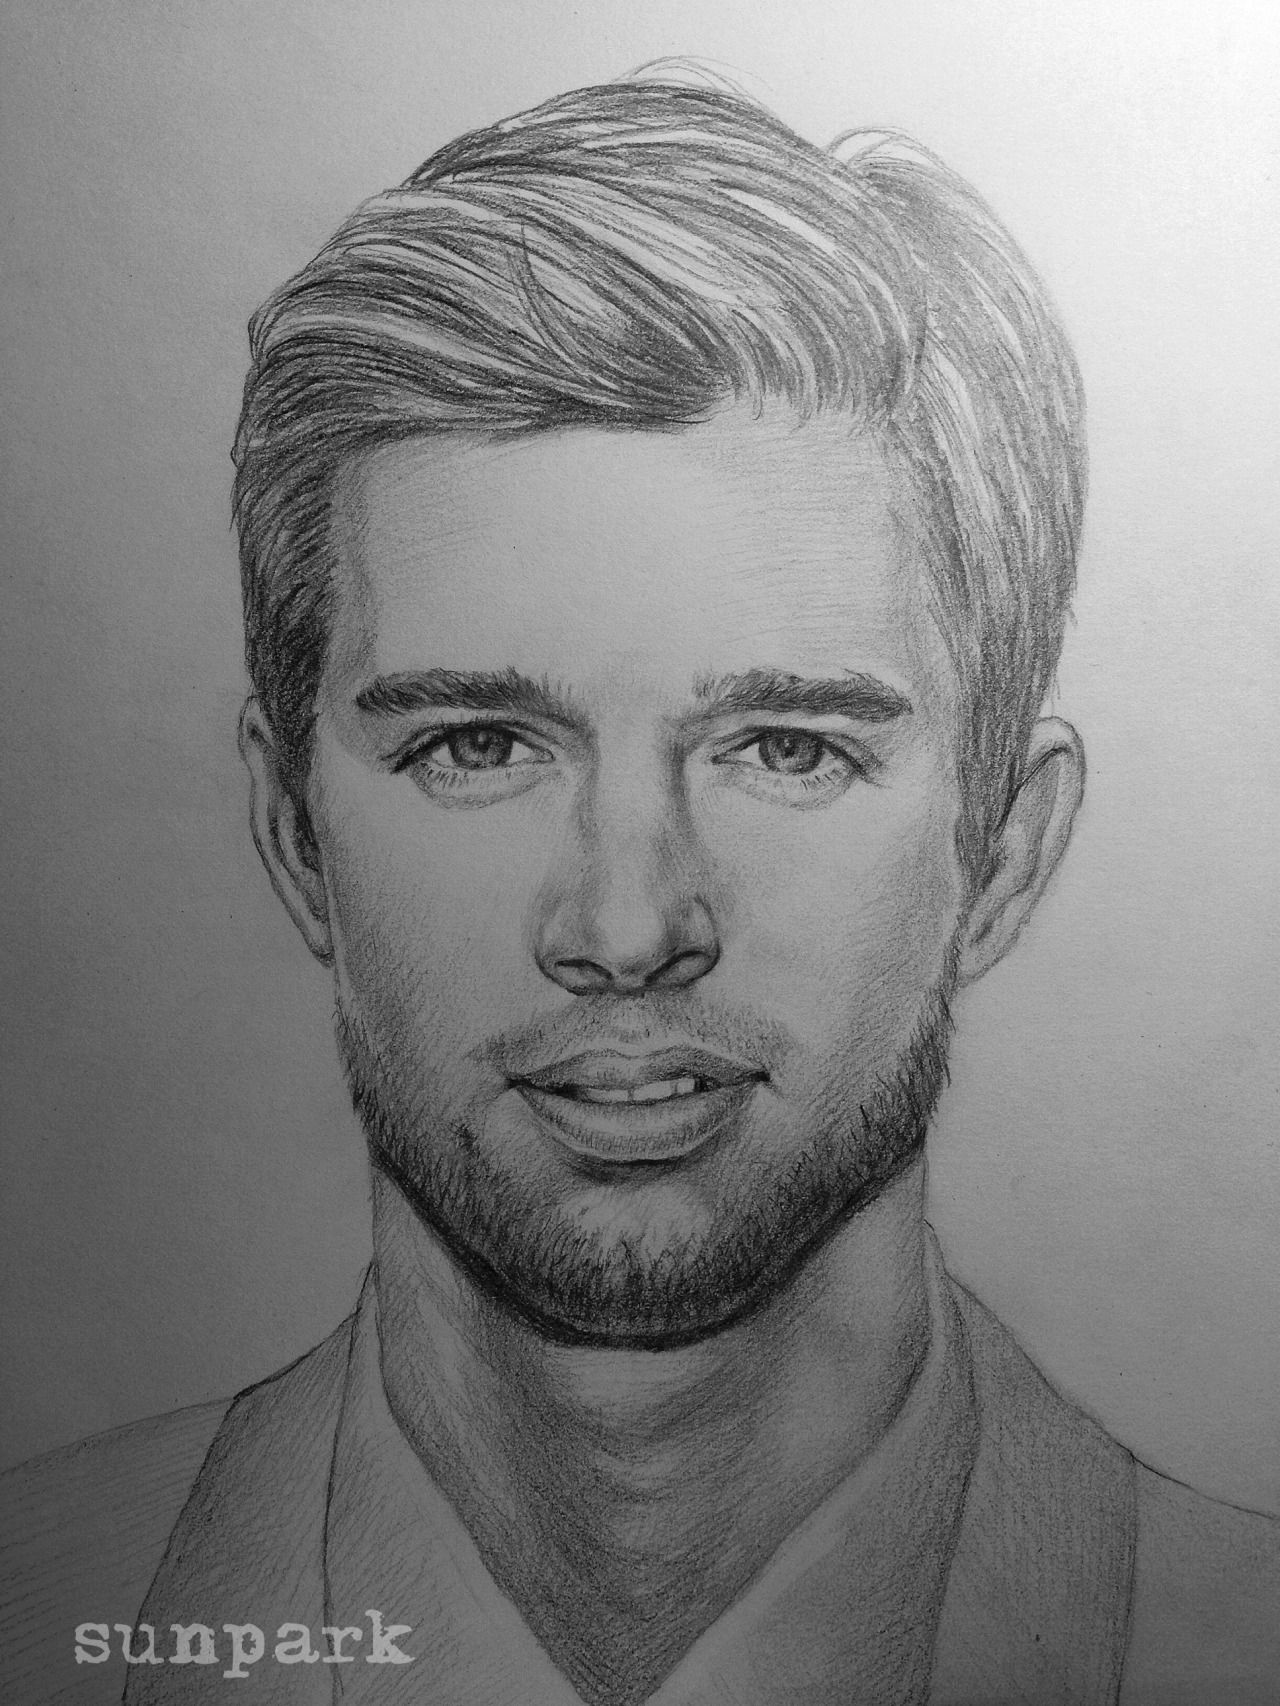 Jason DiLaurentis (Drew Van Acker) Sketch from our fan Sun Park ...